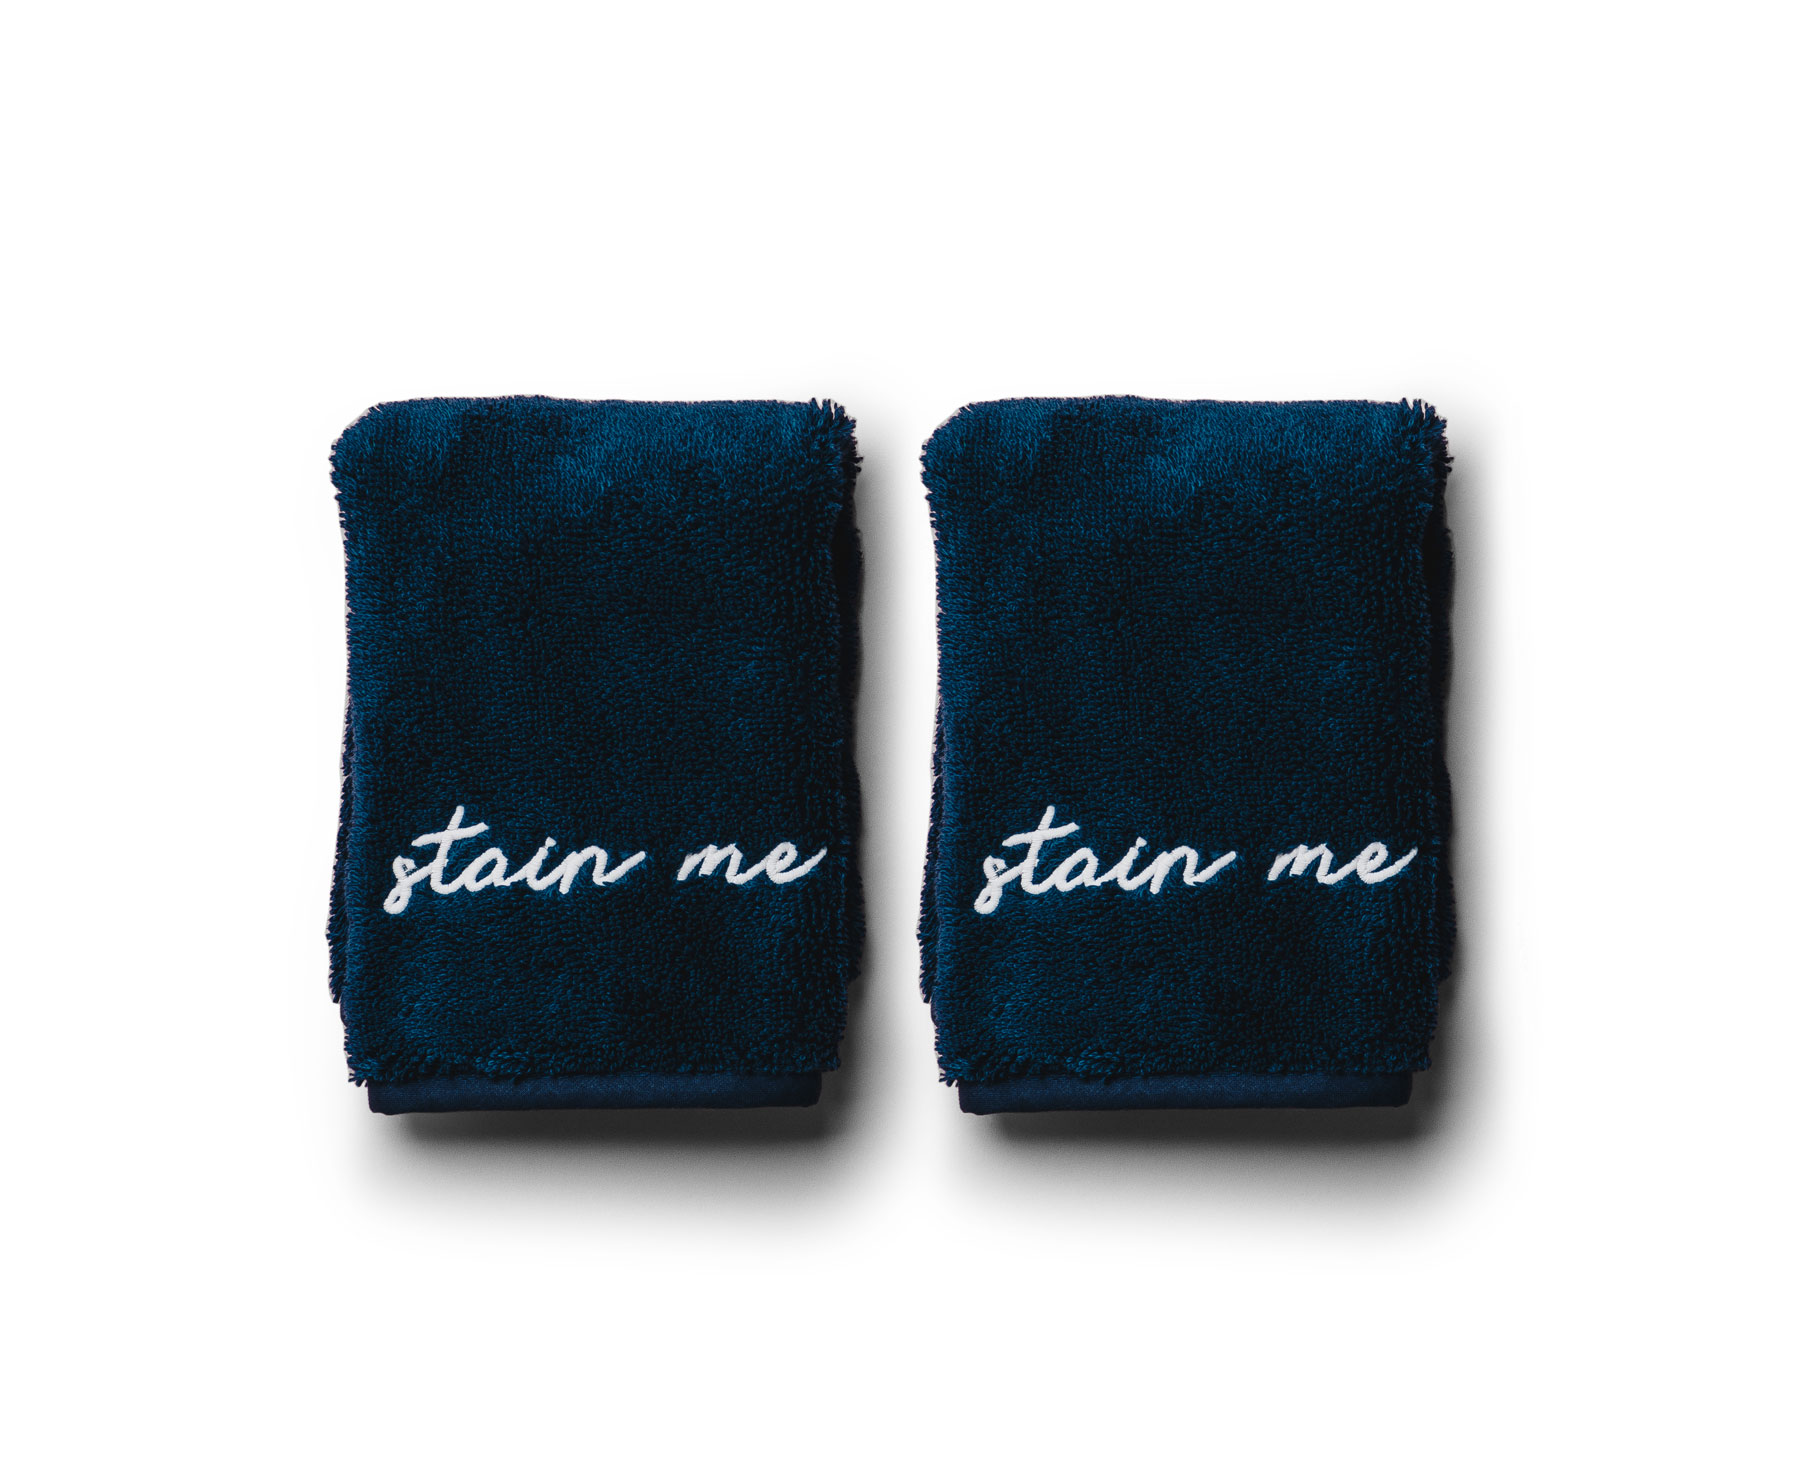 Best gifts for sisters - Weezie Makeup Towels